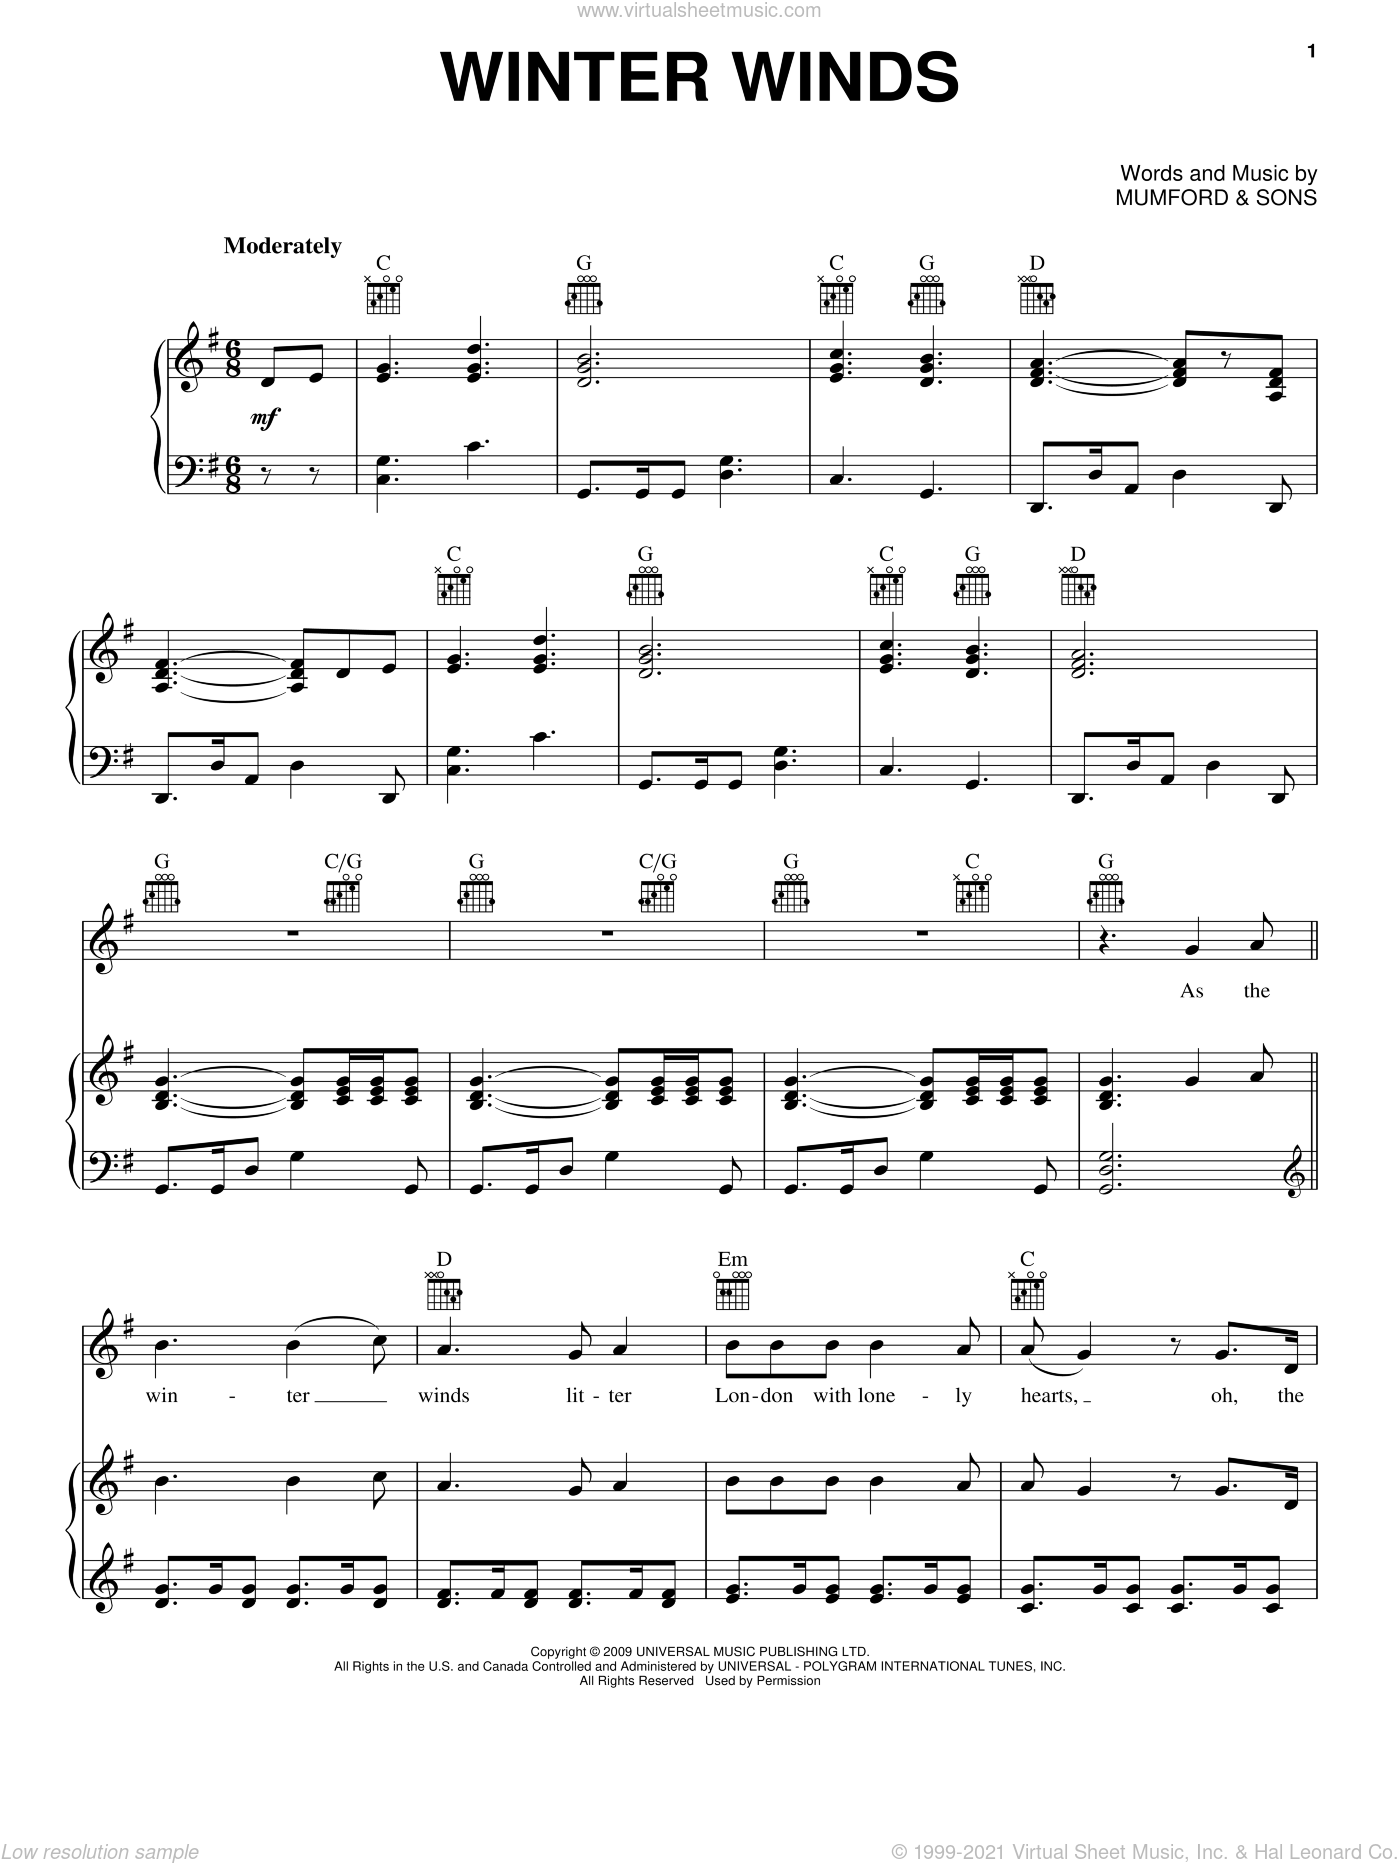 Winter Winds sheet music for voice, piano or guitar by Mumford & Sons, intermediate skill level